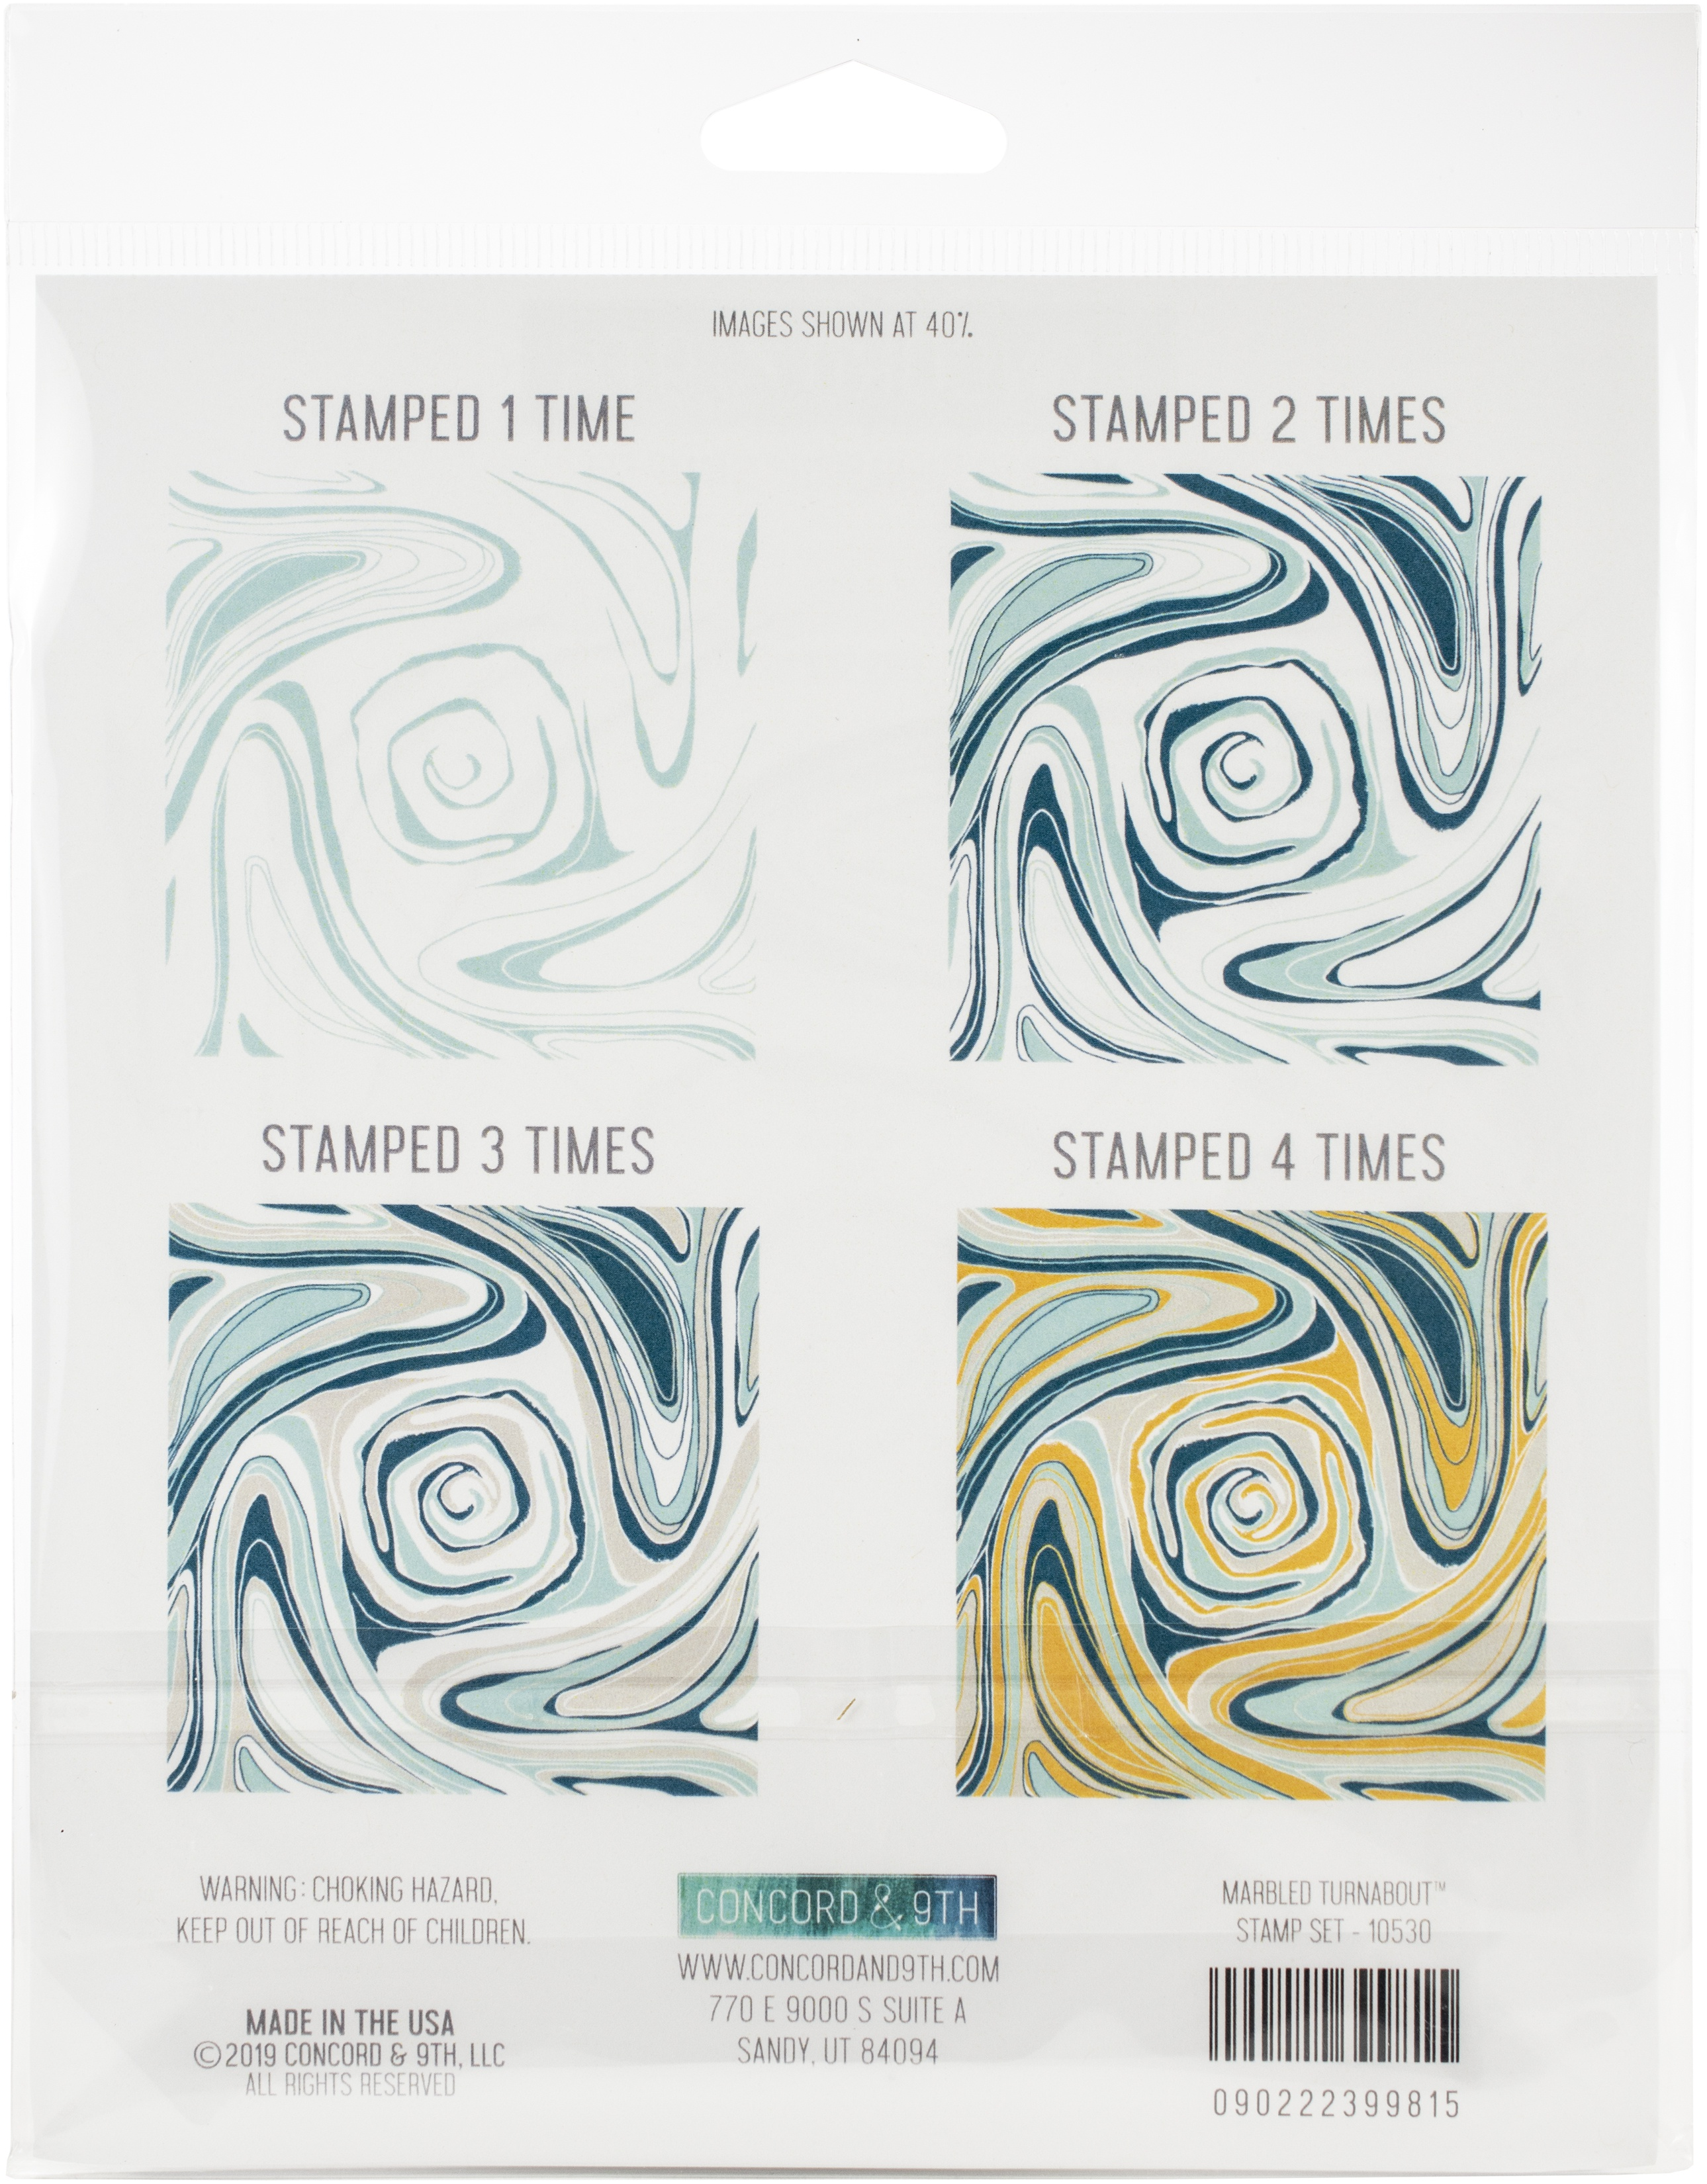 Concord and 9th - Marbled Turnabout Stamp Set